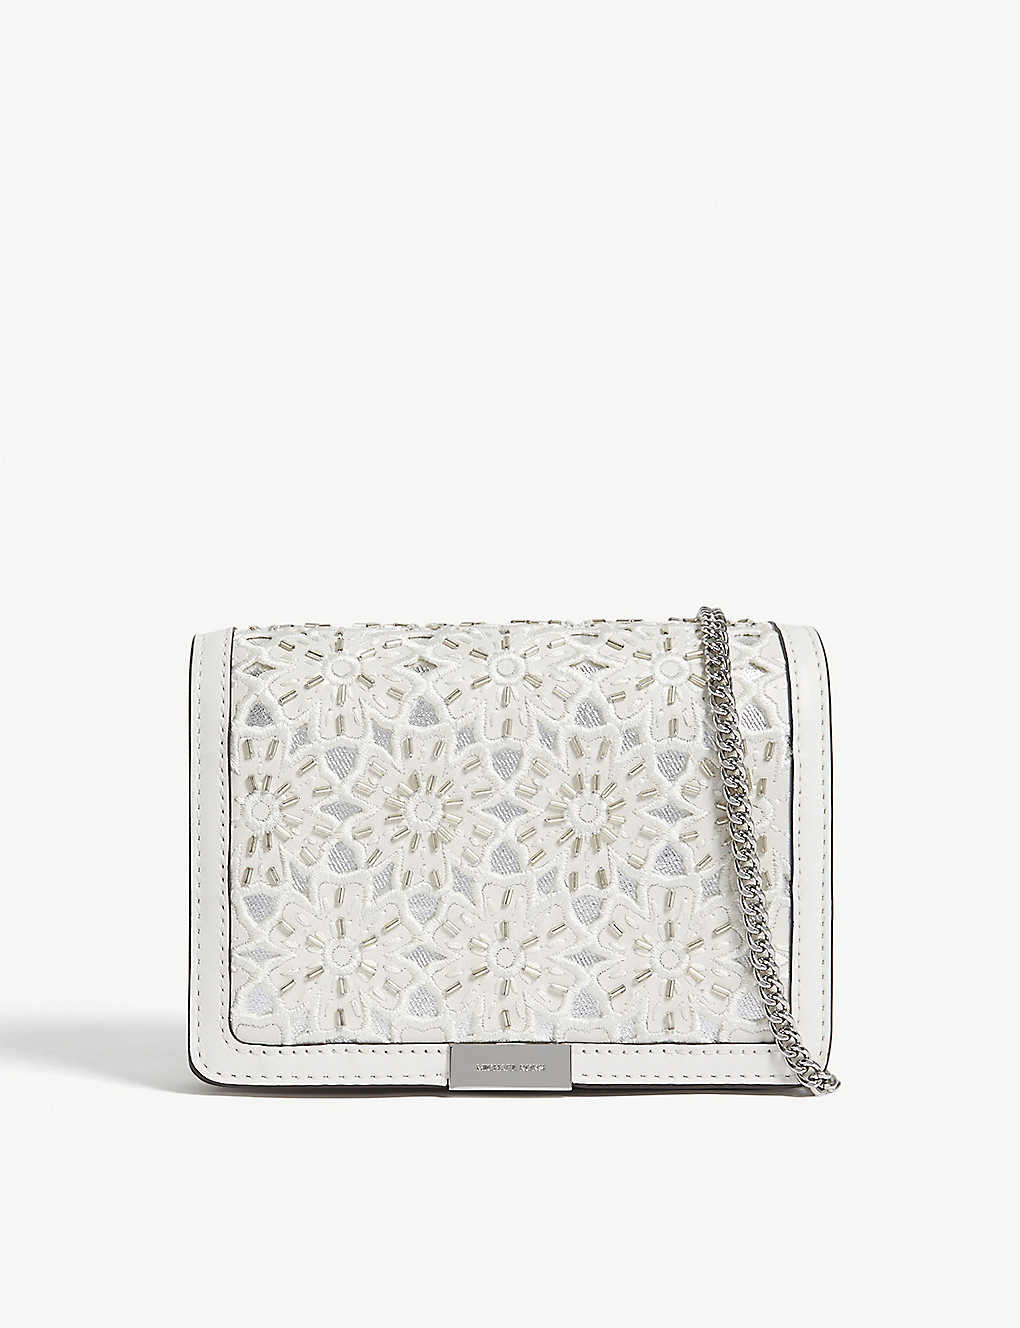 9a0f2f0e67 MICHAEL MICHAEL KORS - Jade medium floral leather clutch ...